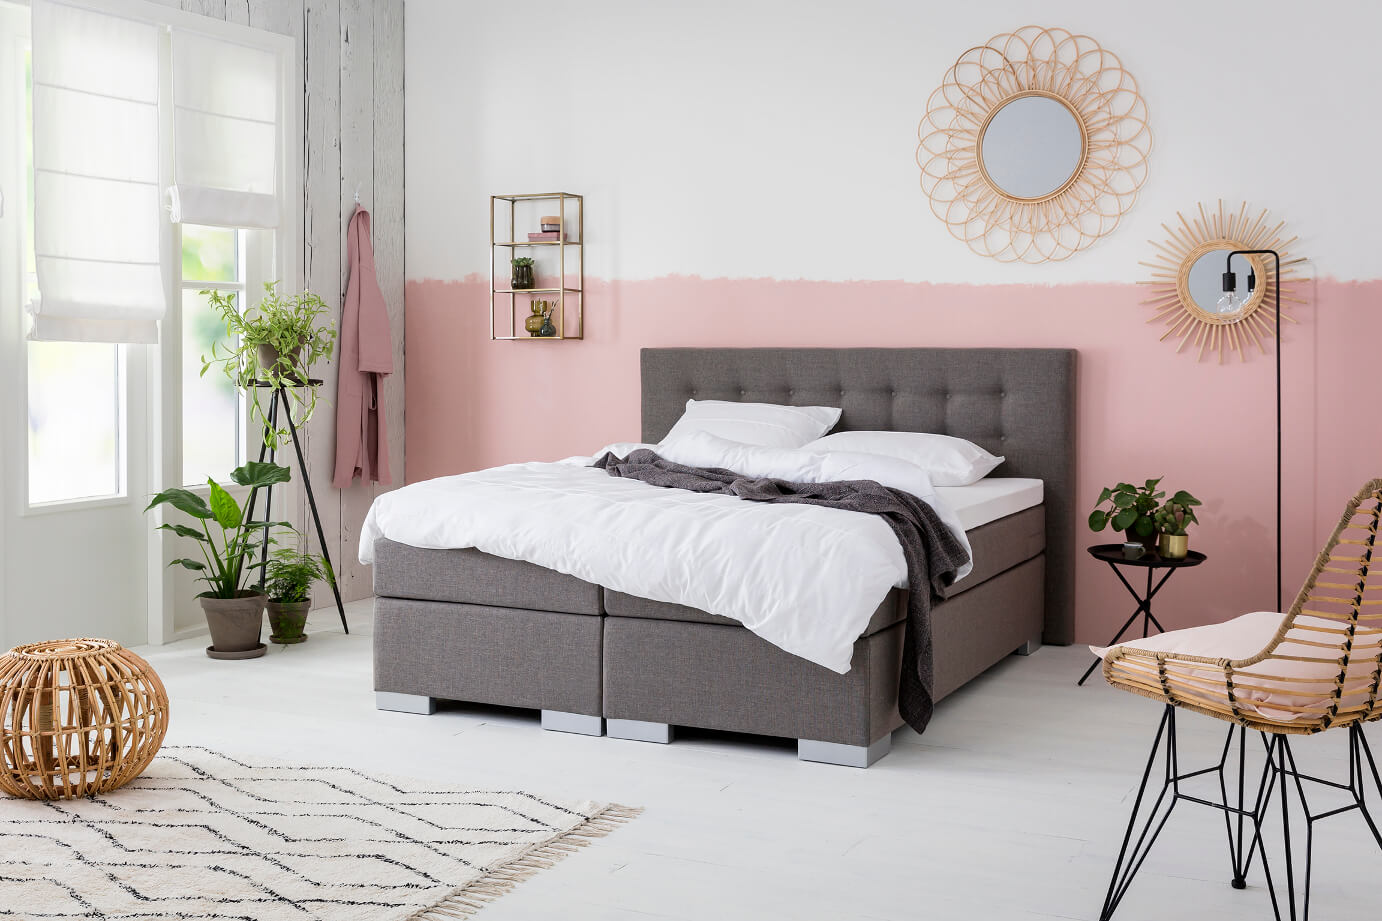 Boxspring Ikea 1 Persoons Boxspring Lease Bekend Van Tv Dekbed Discounter